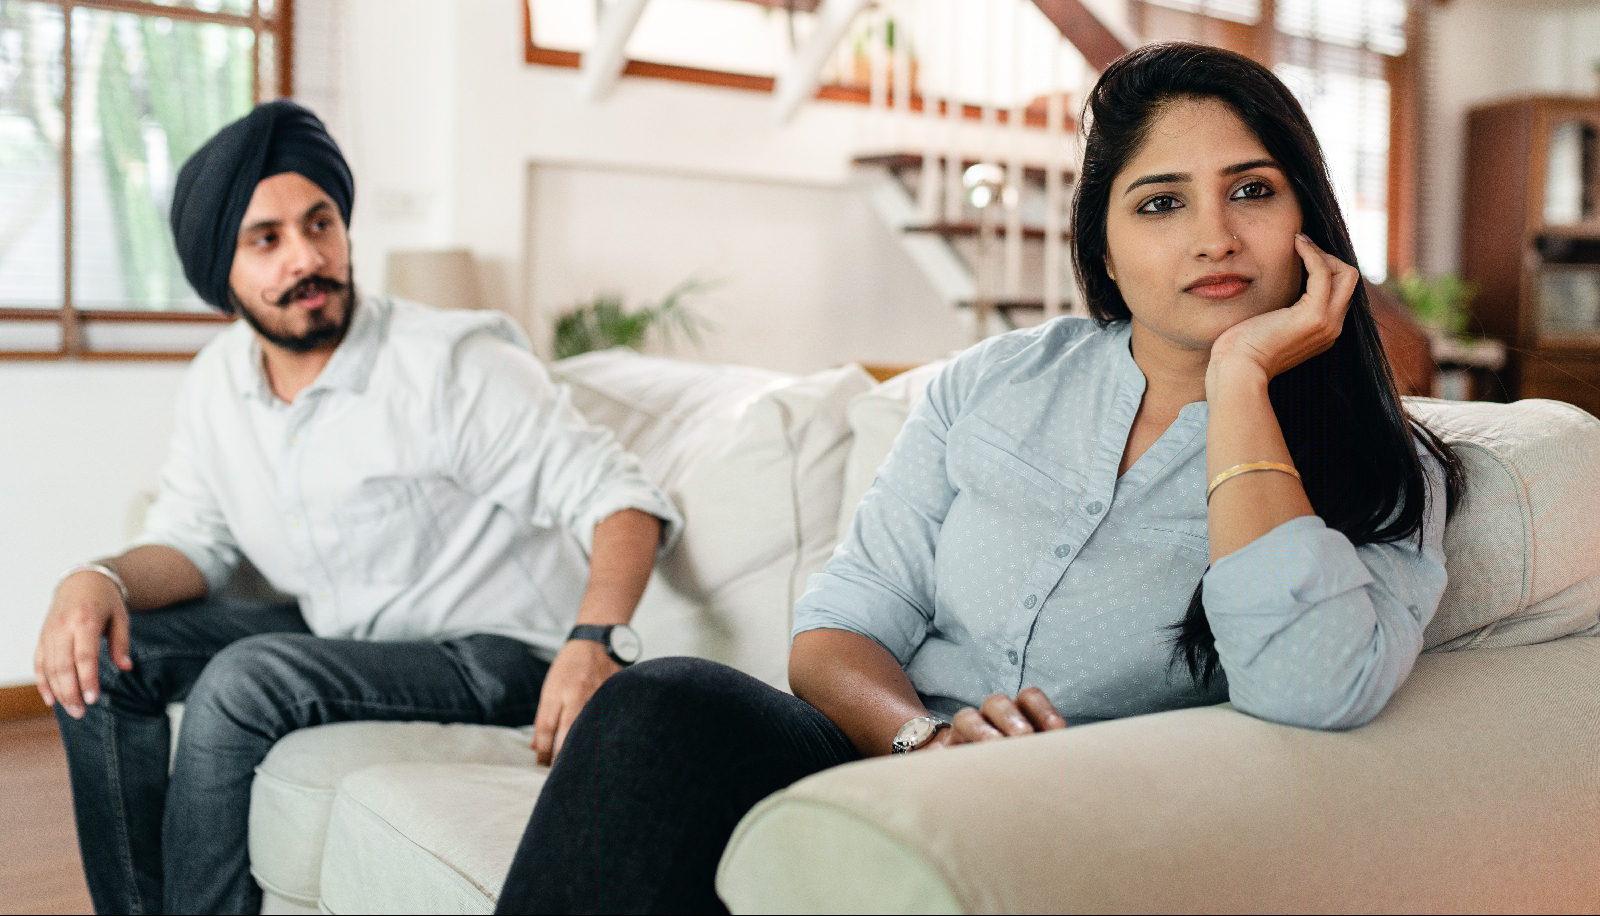 6 Common Mistakes Ladies Should Avoid While Dating